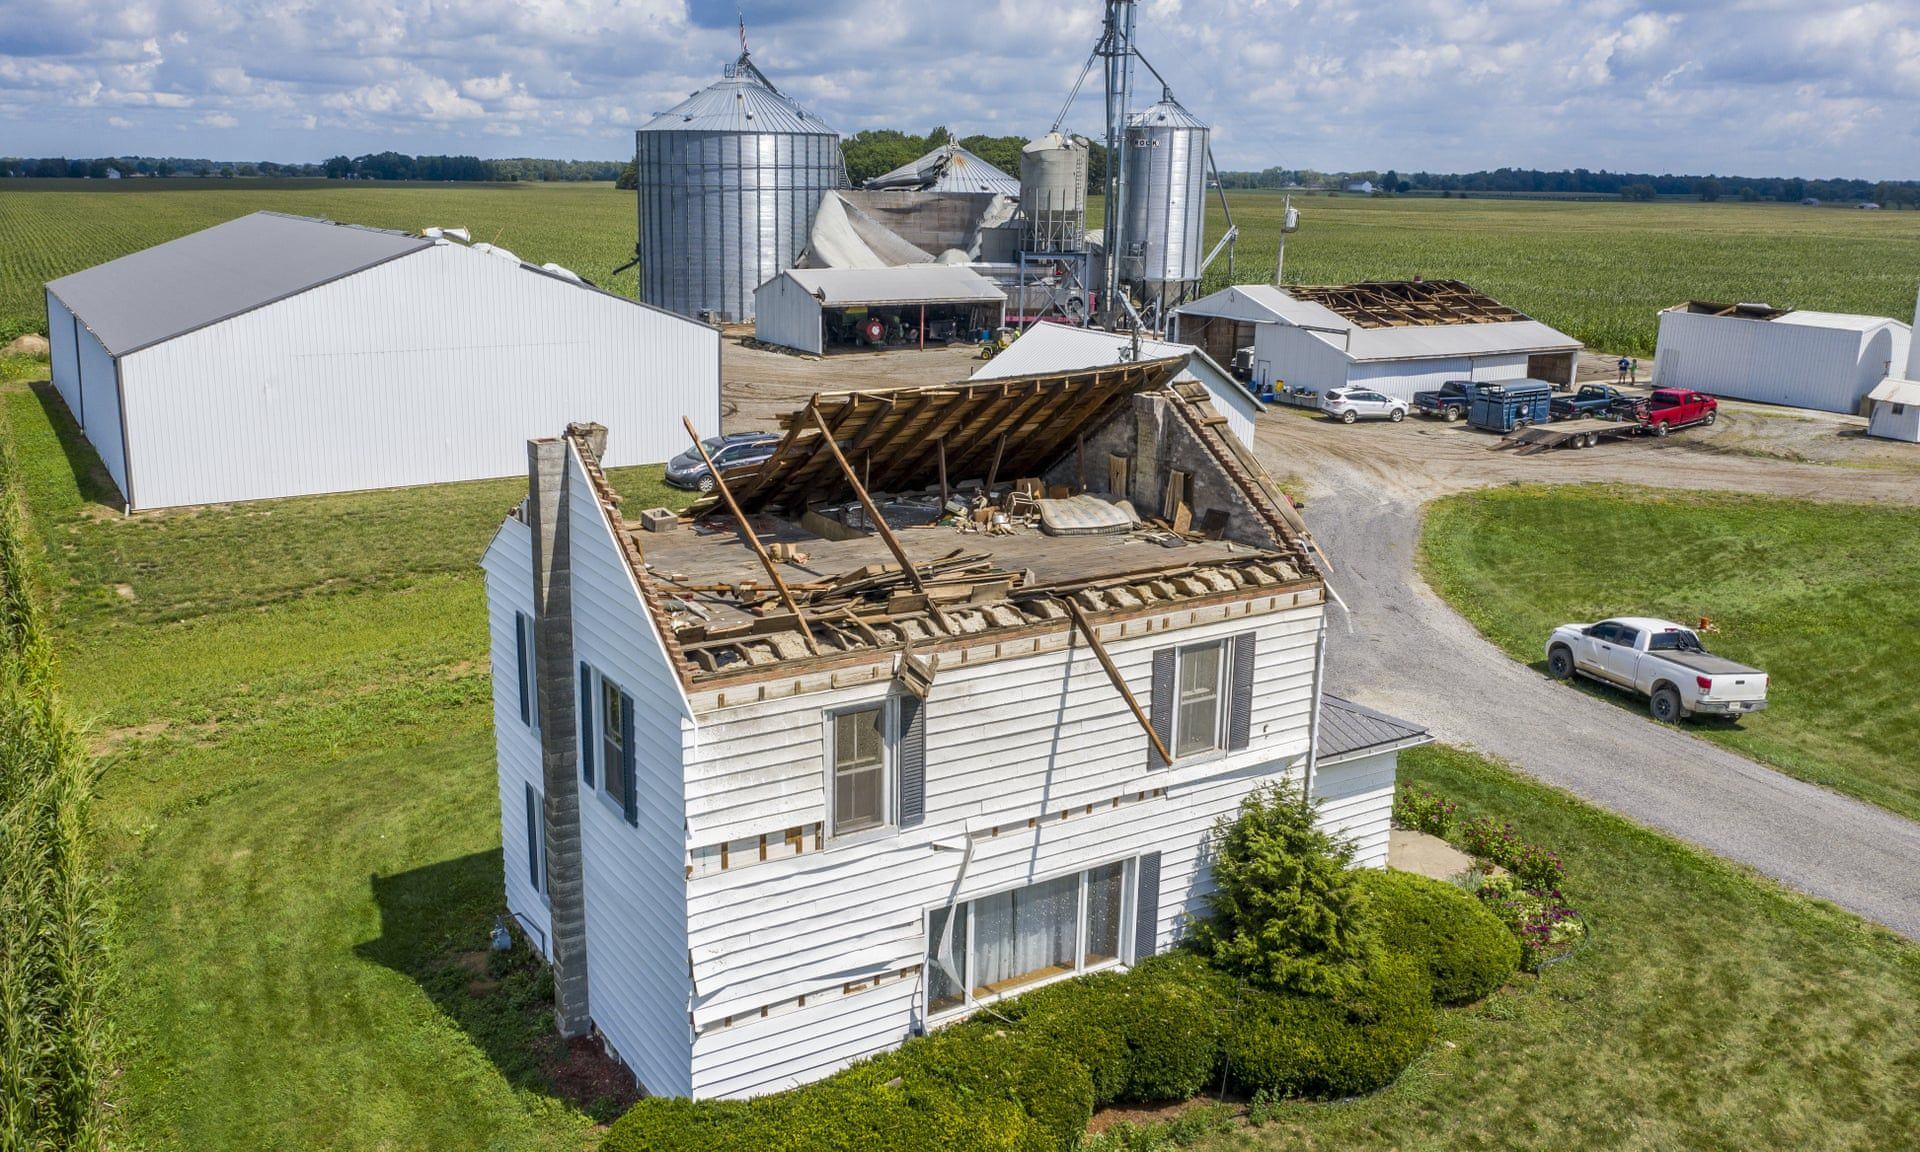 Extreme weather just devastated 10m acres in the midwest. Expect more of this